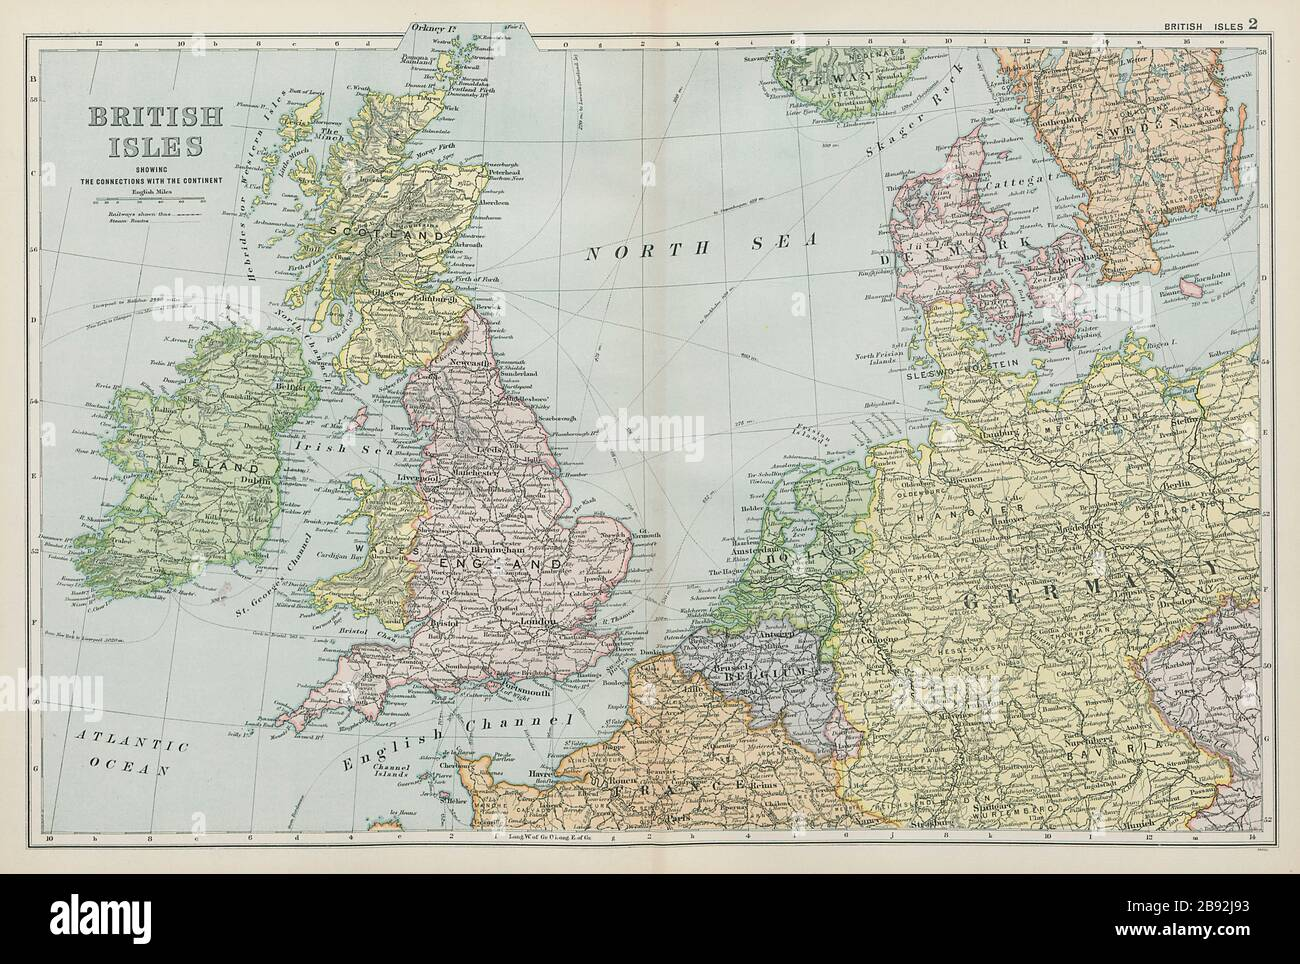 British Isles Northern Europe Benelux Germany Denmark Bacon 1900 Old Map Stock Photo Alamy